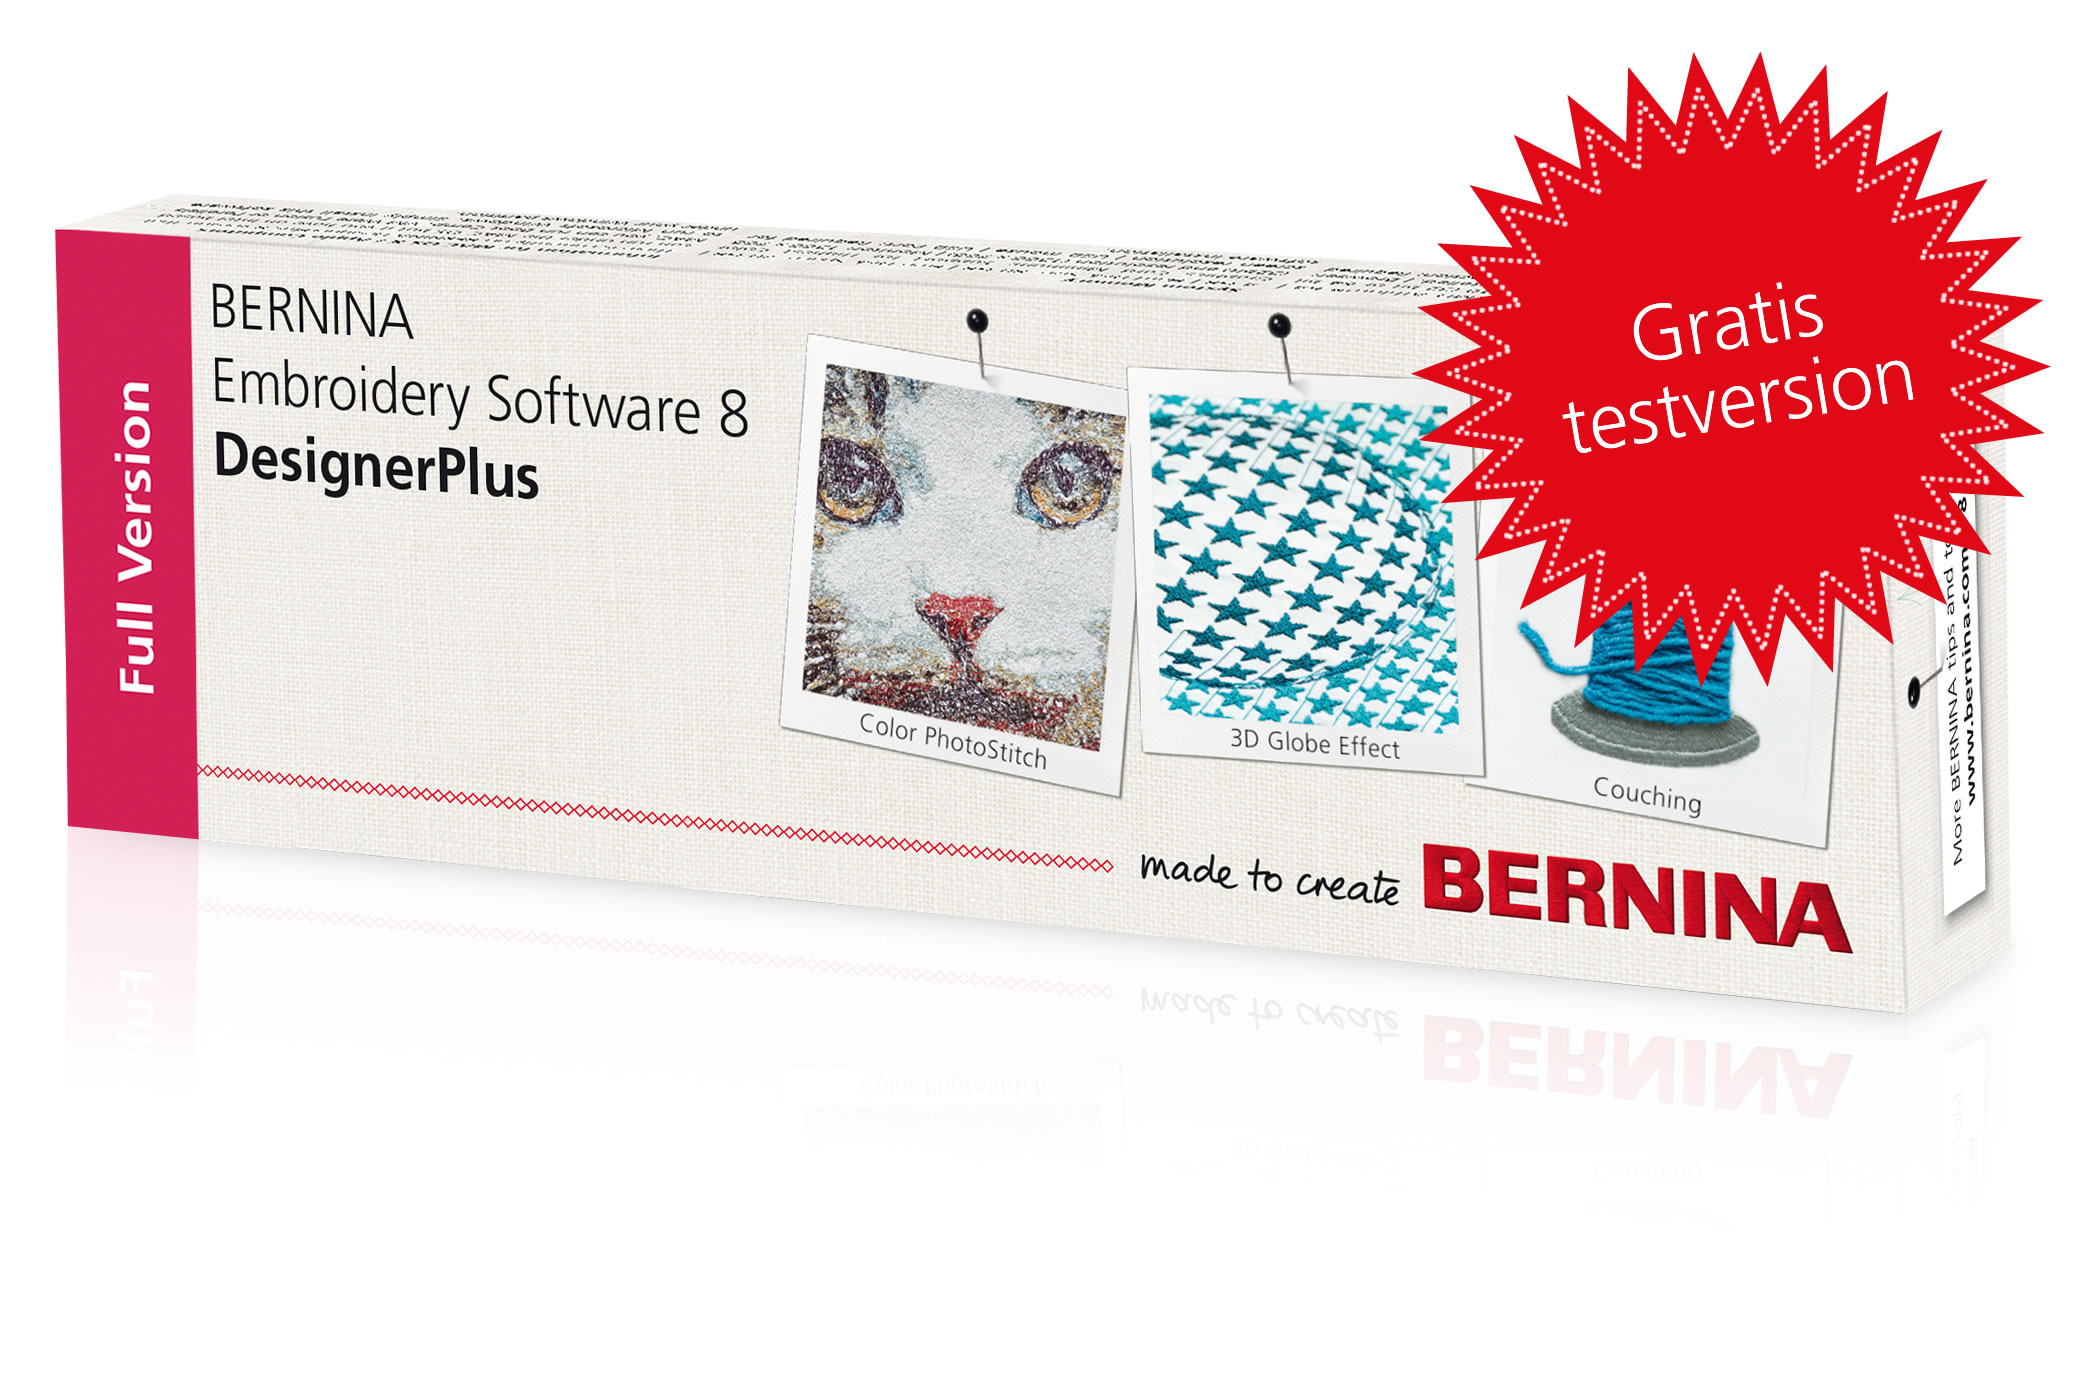 BERNINA broderisoftware